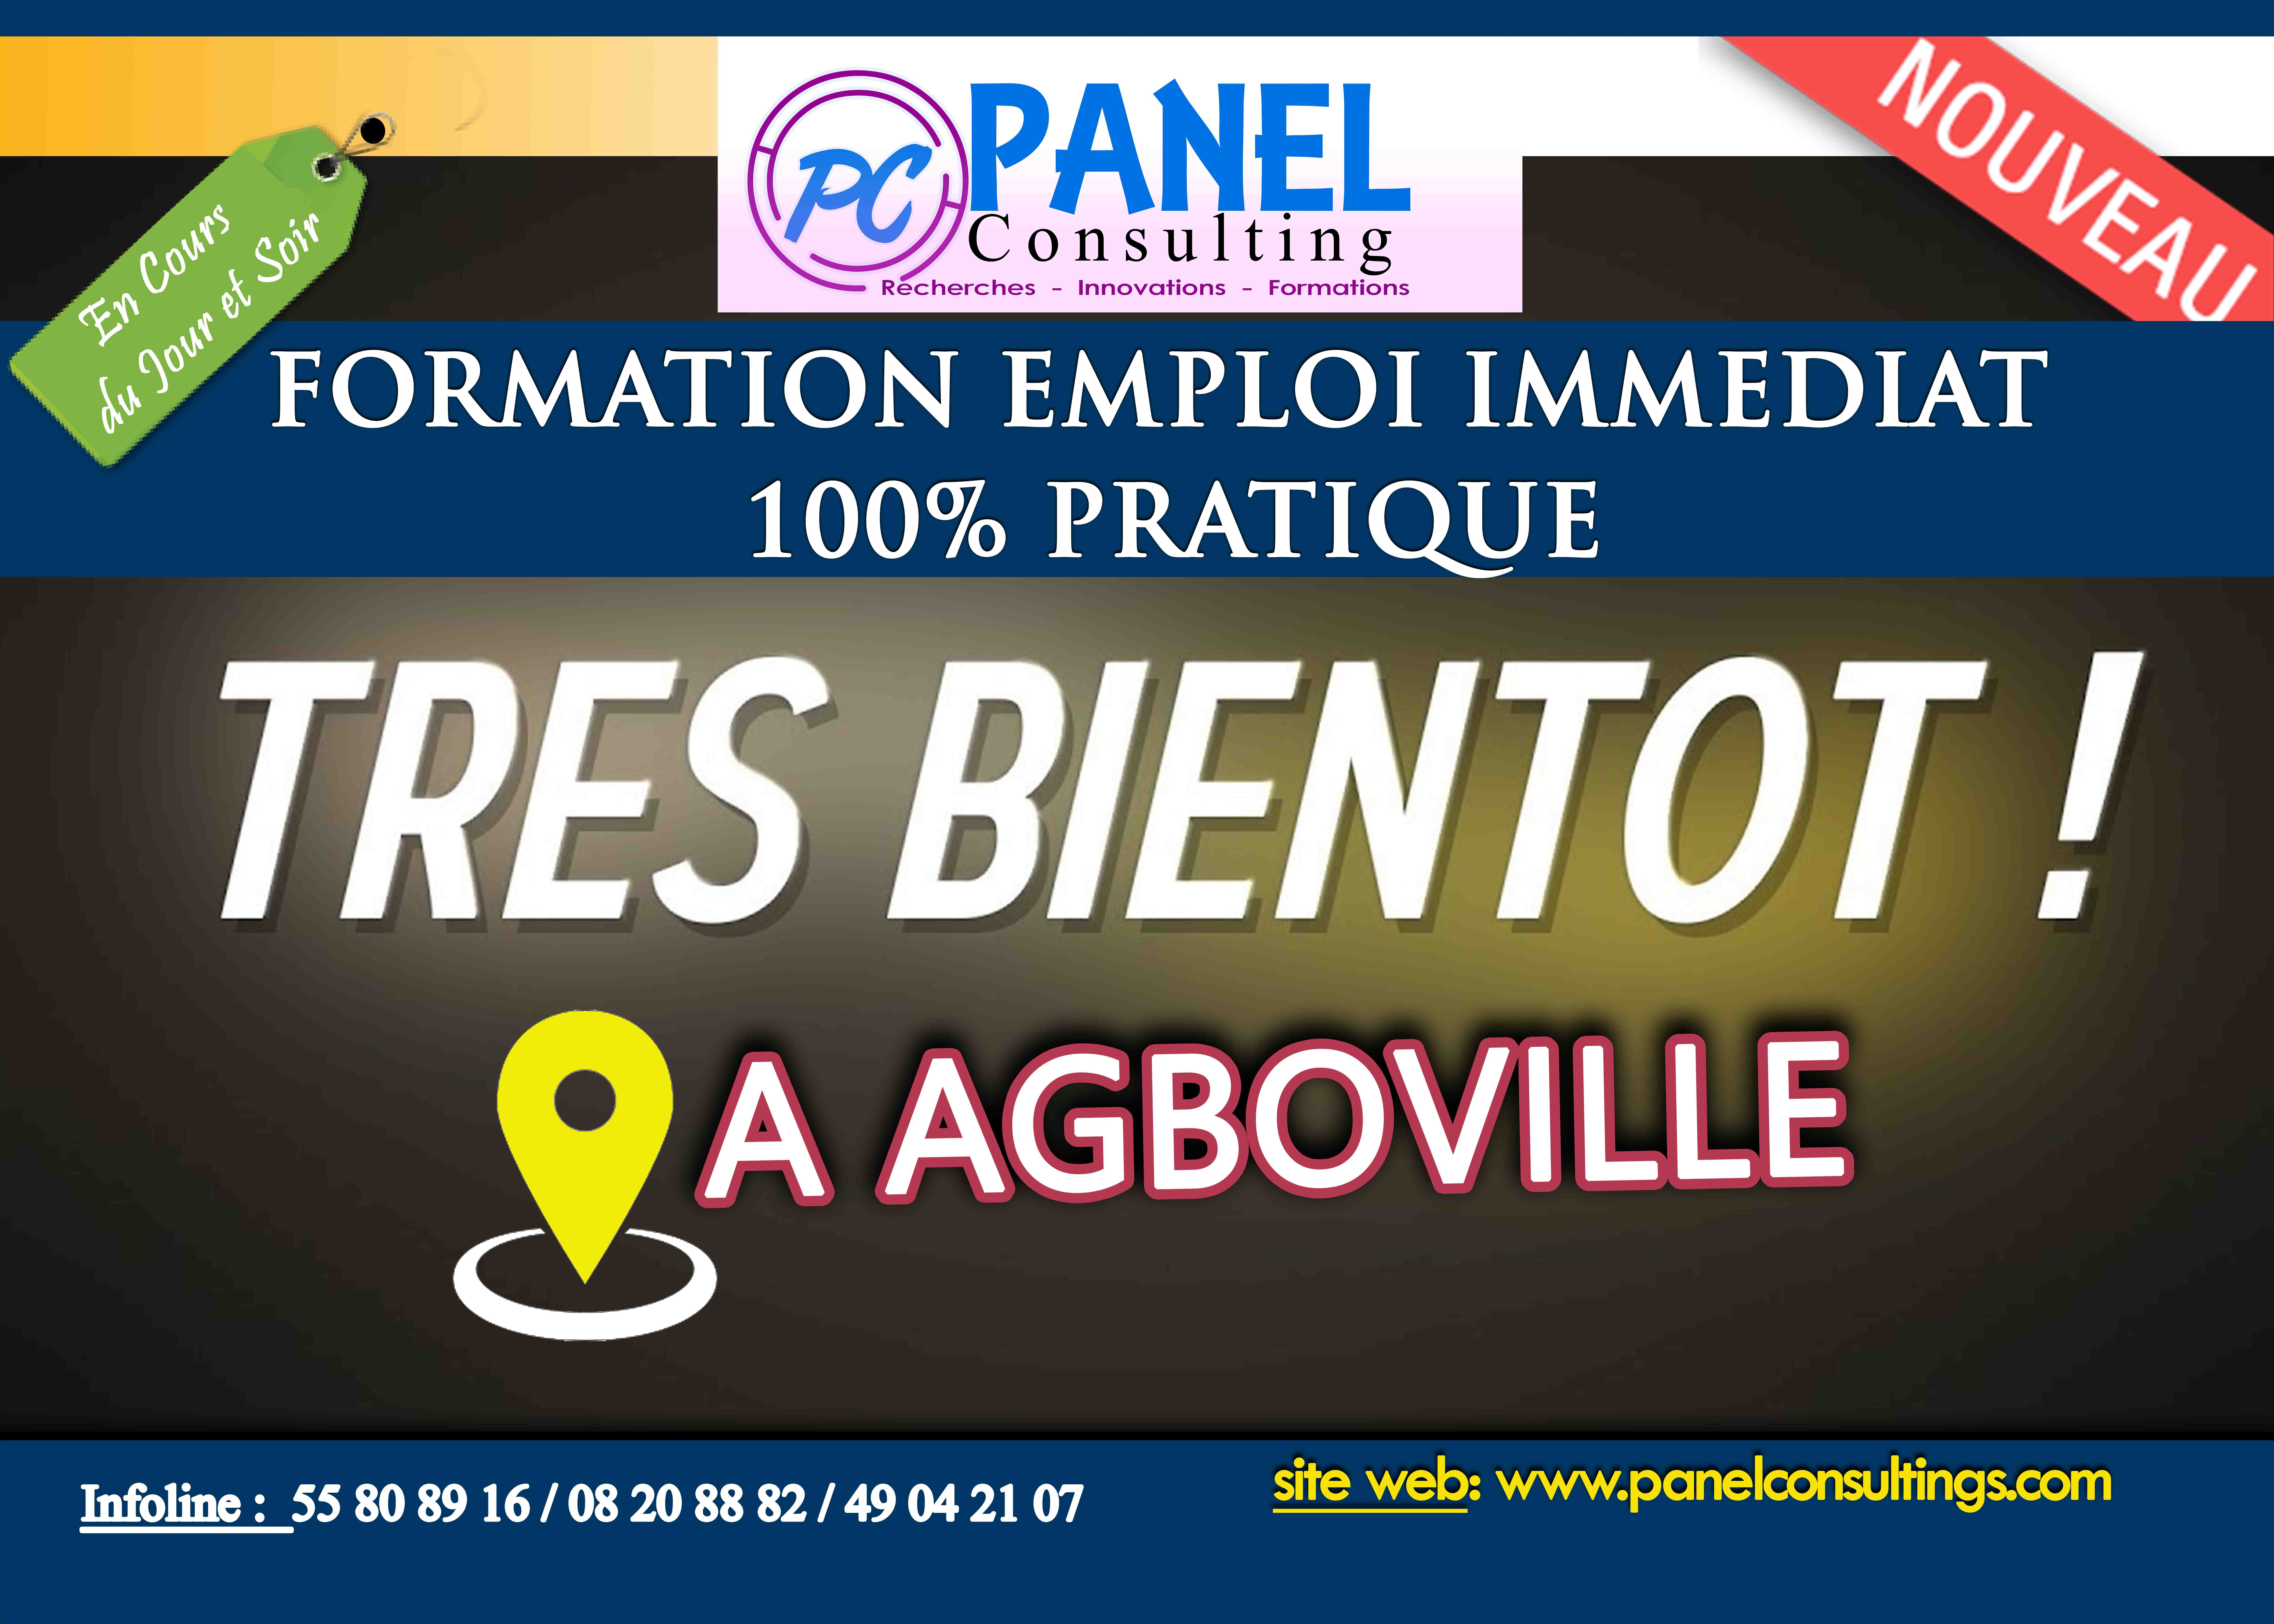 Affiche formation qualifiante 2020-2021-agboville-panel-consulting-min.jpg-panel-consulting